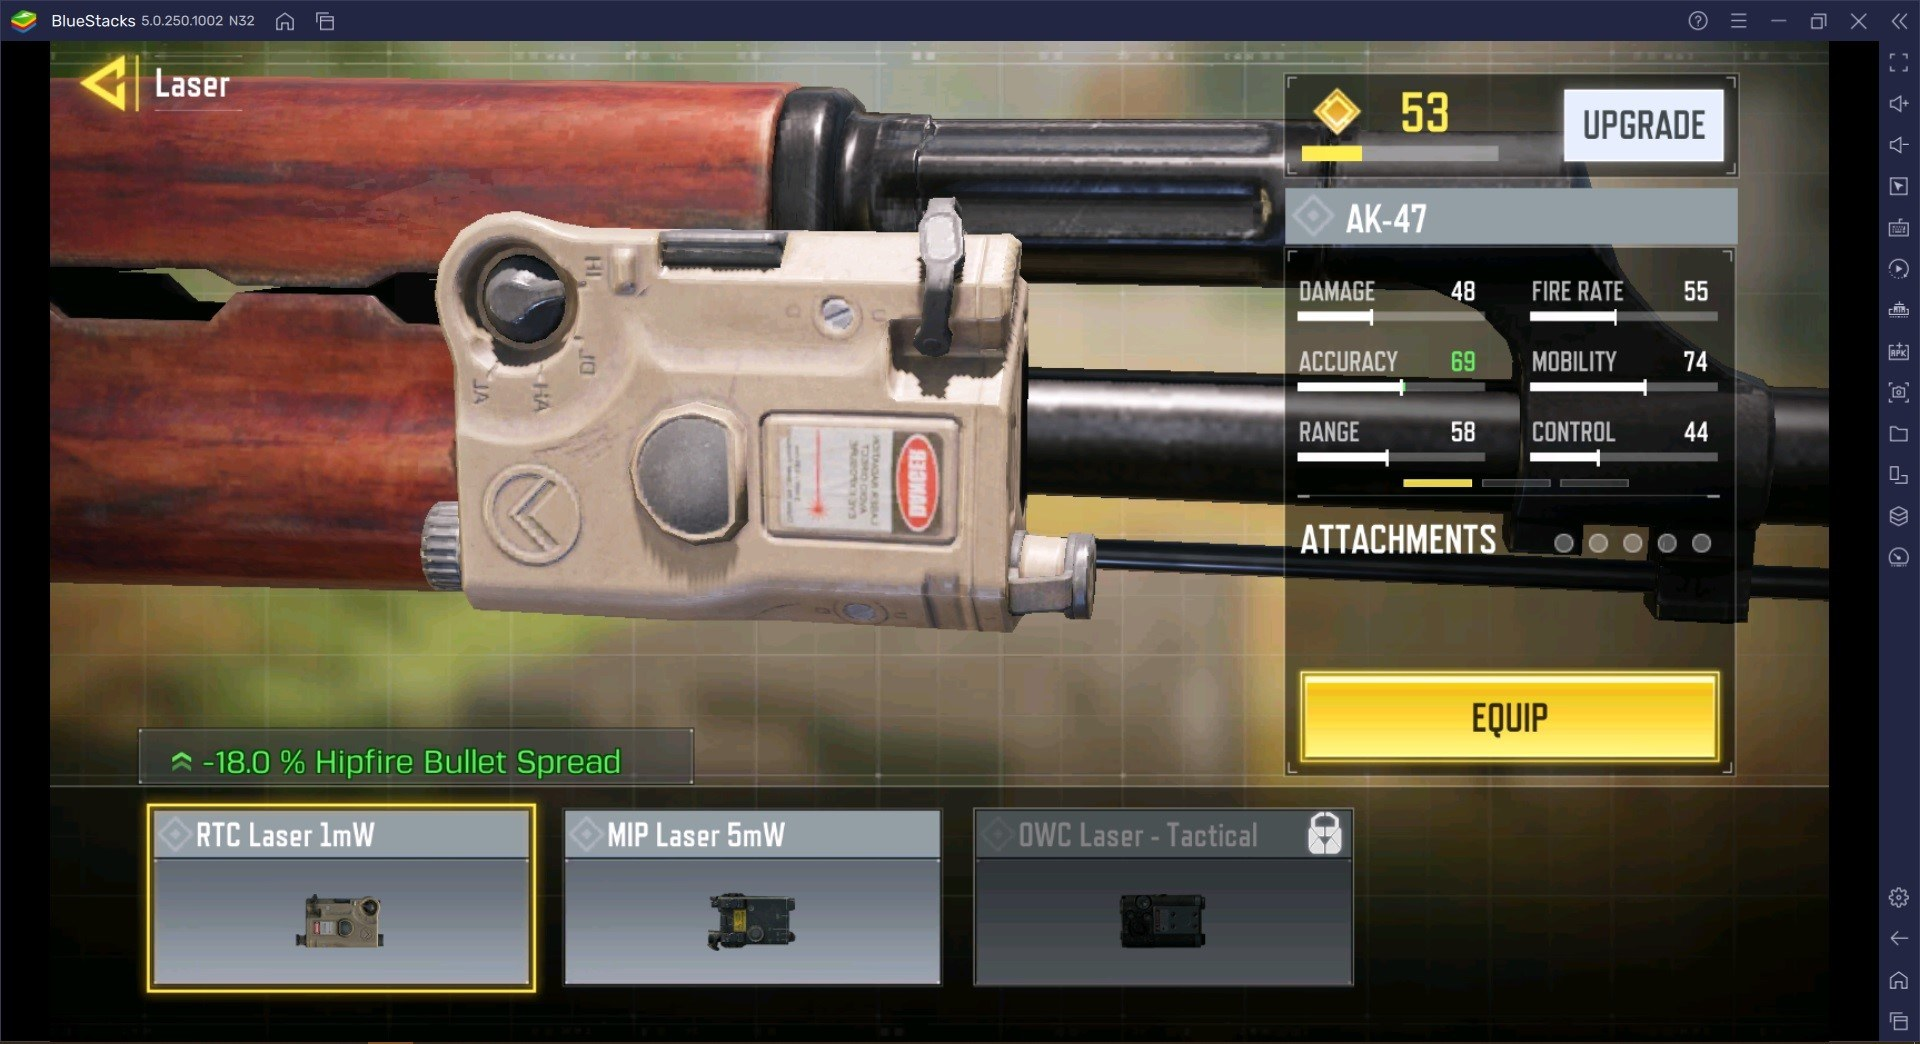 Call of Duty Mobile Weapon Guide, The AK-47 Goes to the Gunsmith